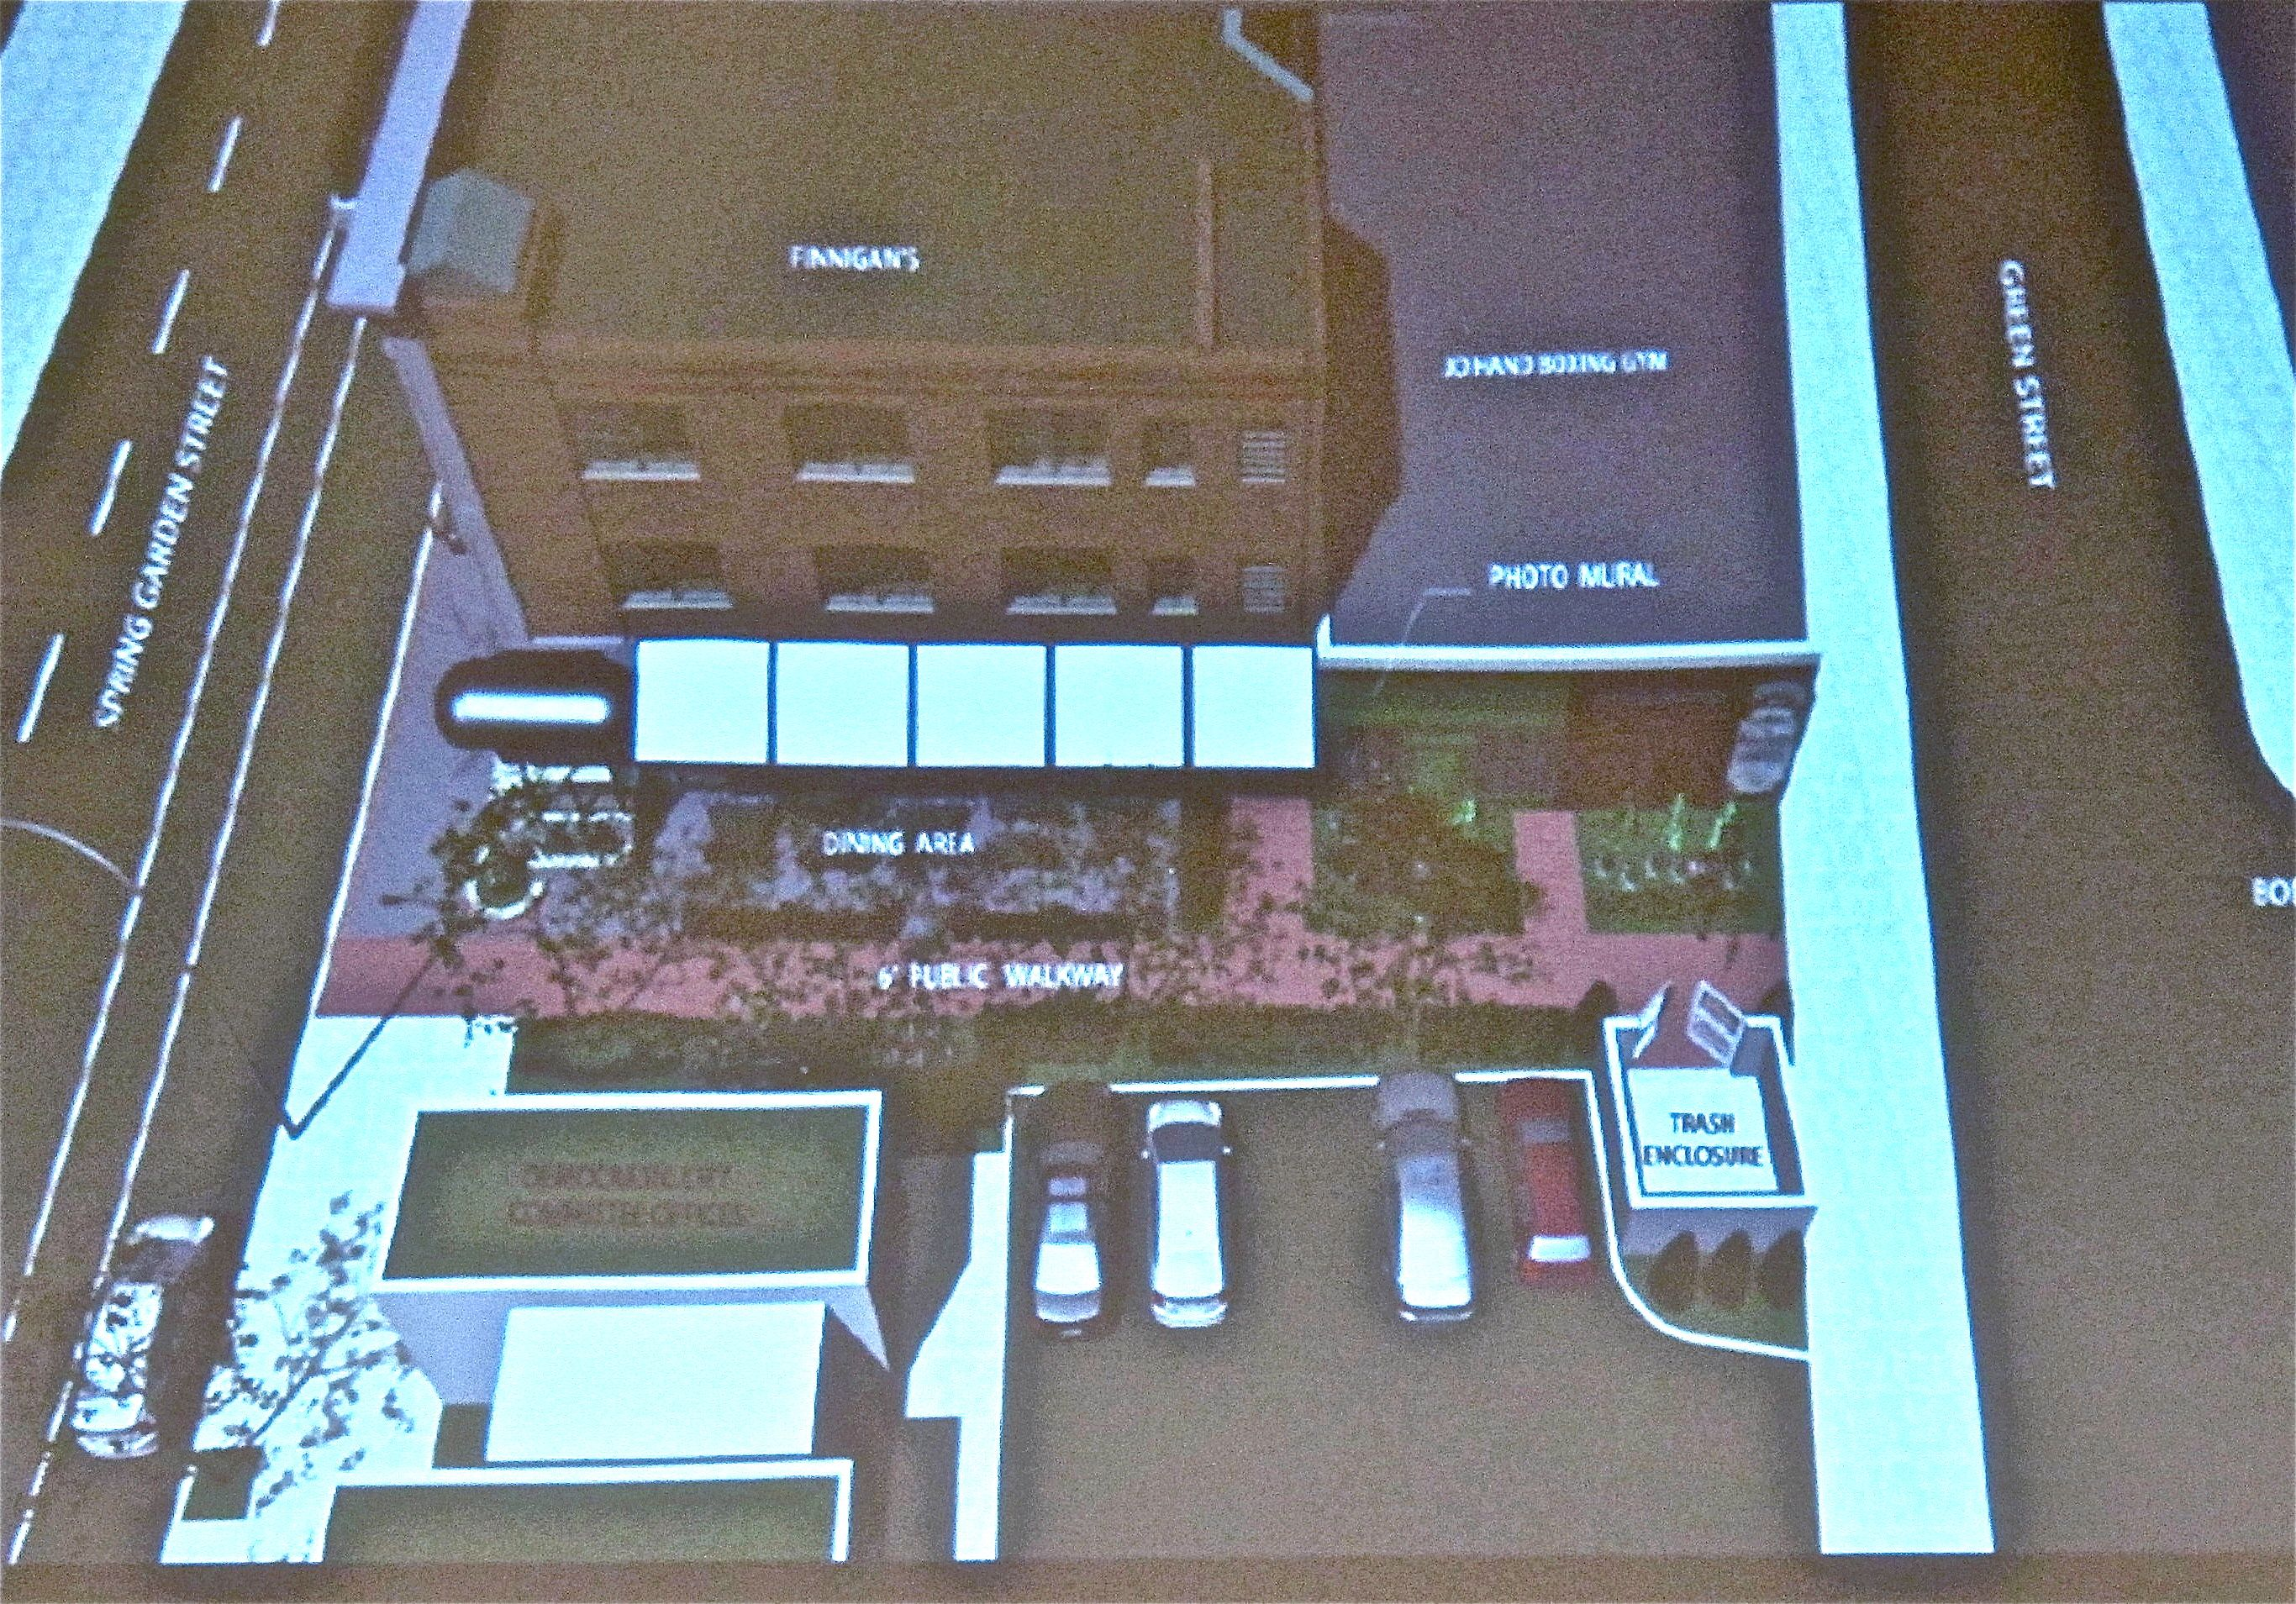 Planning recommends striking part of Bodine Street to add Finnegan's Wake patio, but says no to balconies over Spring Garden